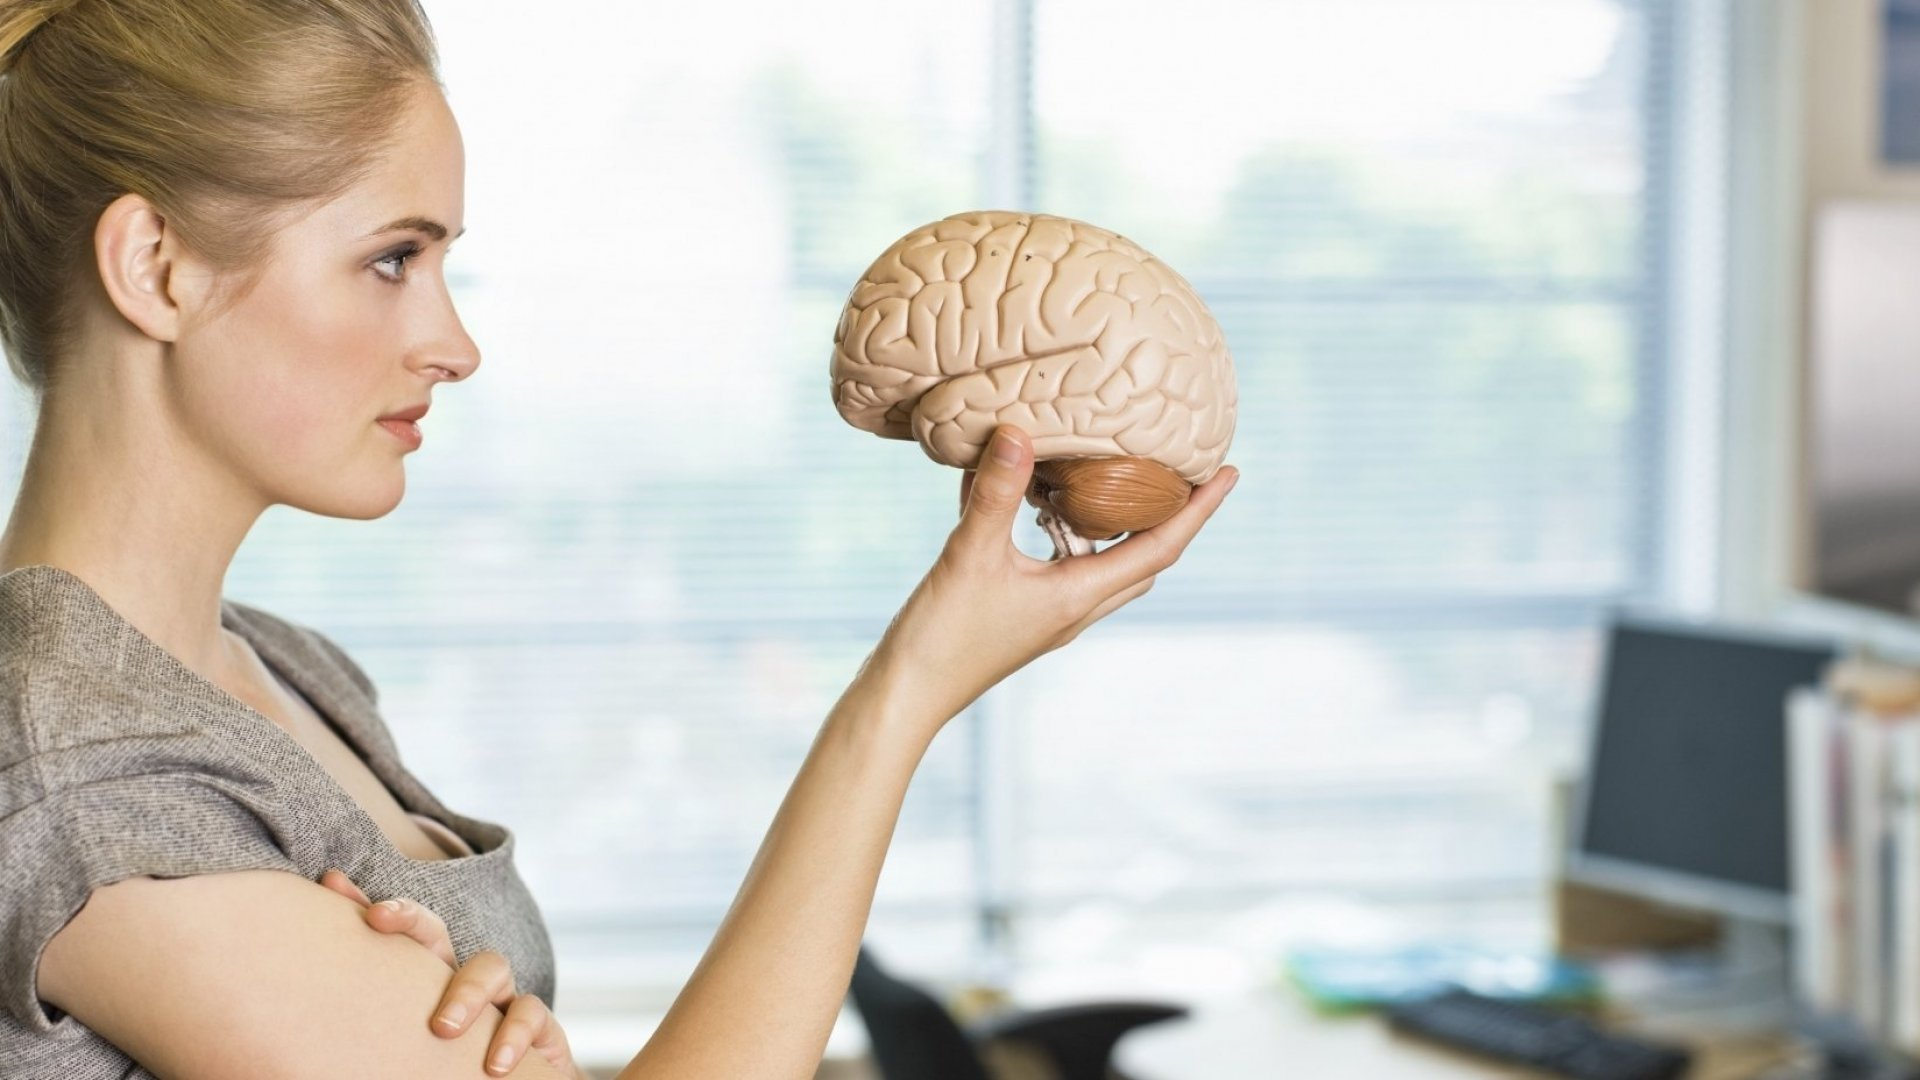 12 Crazy Secrets About the Human Brain to Make You a Better Marketer